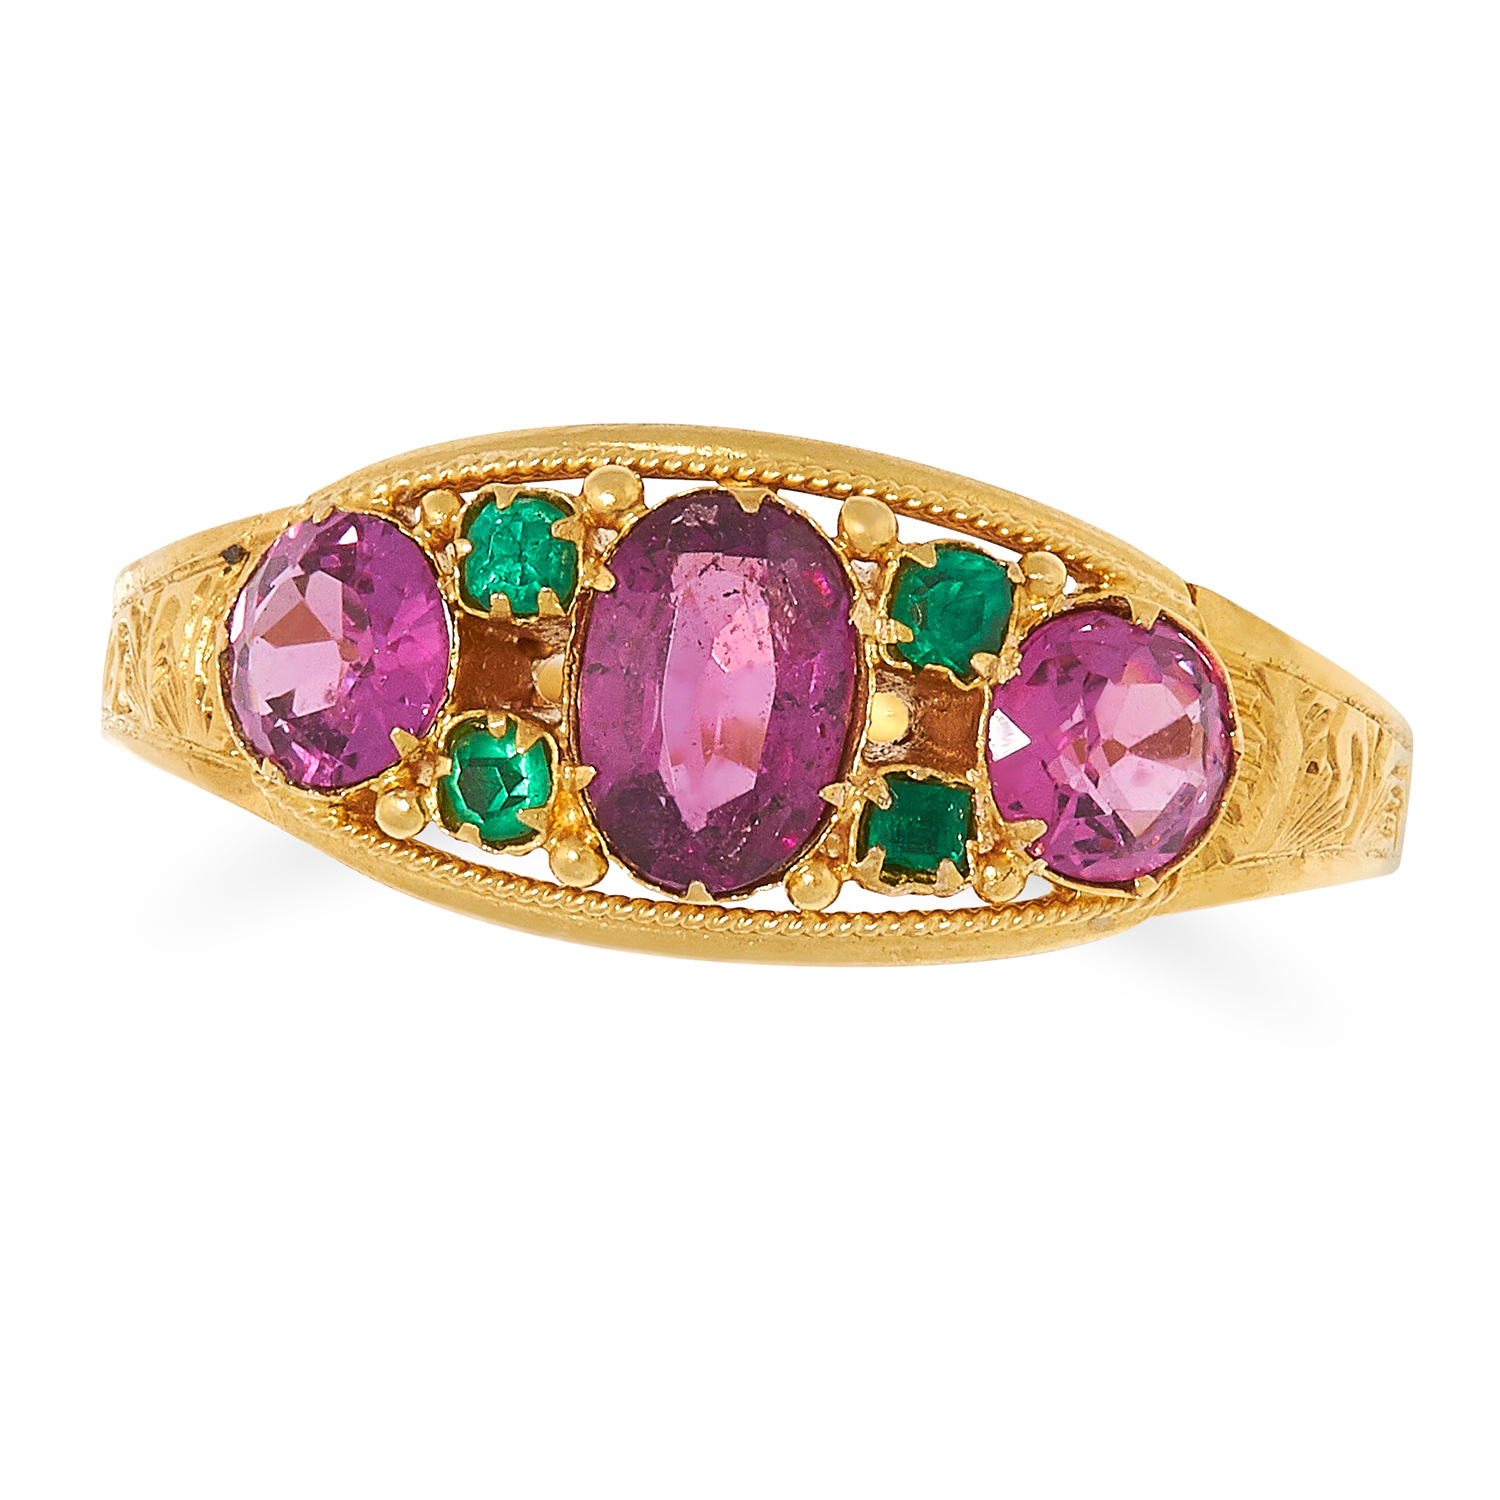 ANTIQUE GARNET AND EMERALD RING set with round and oval cut garnets and round cut emeralds, size M /